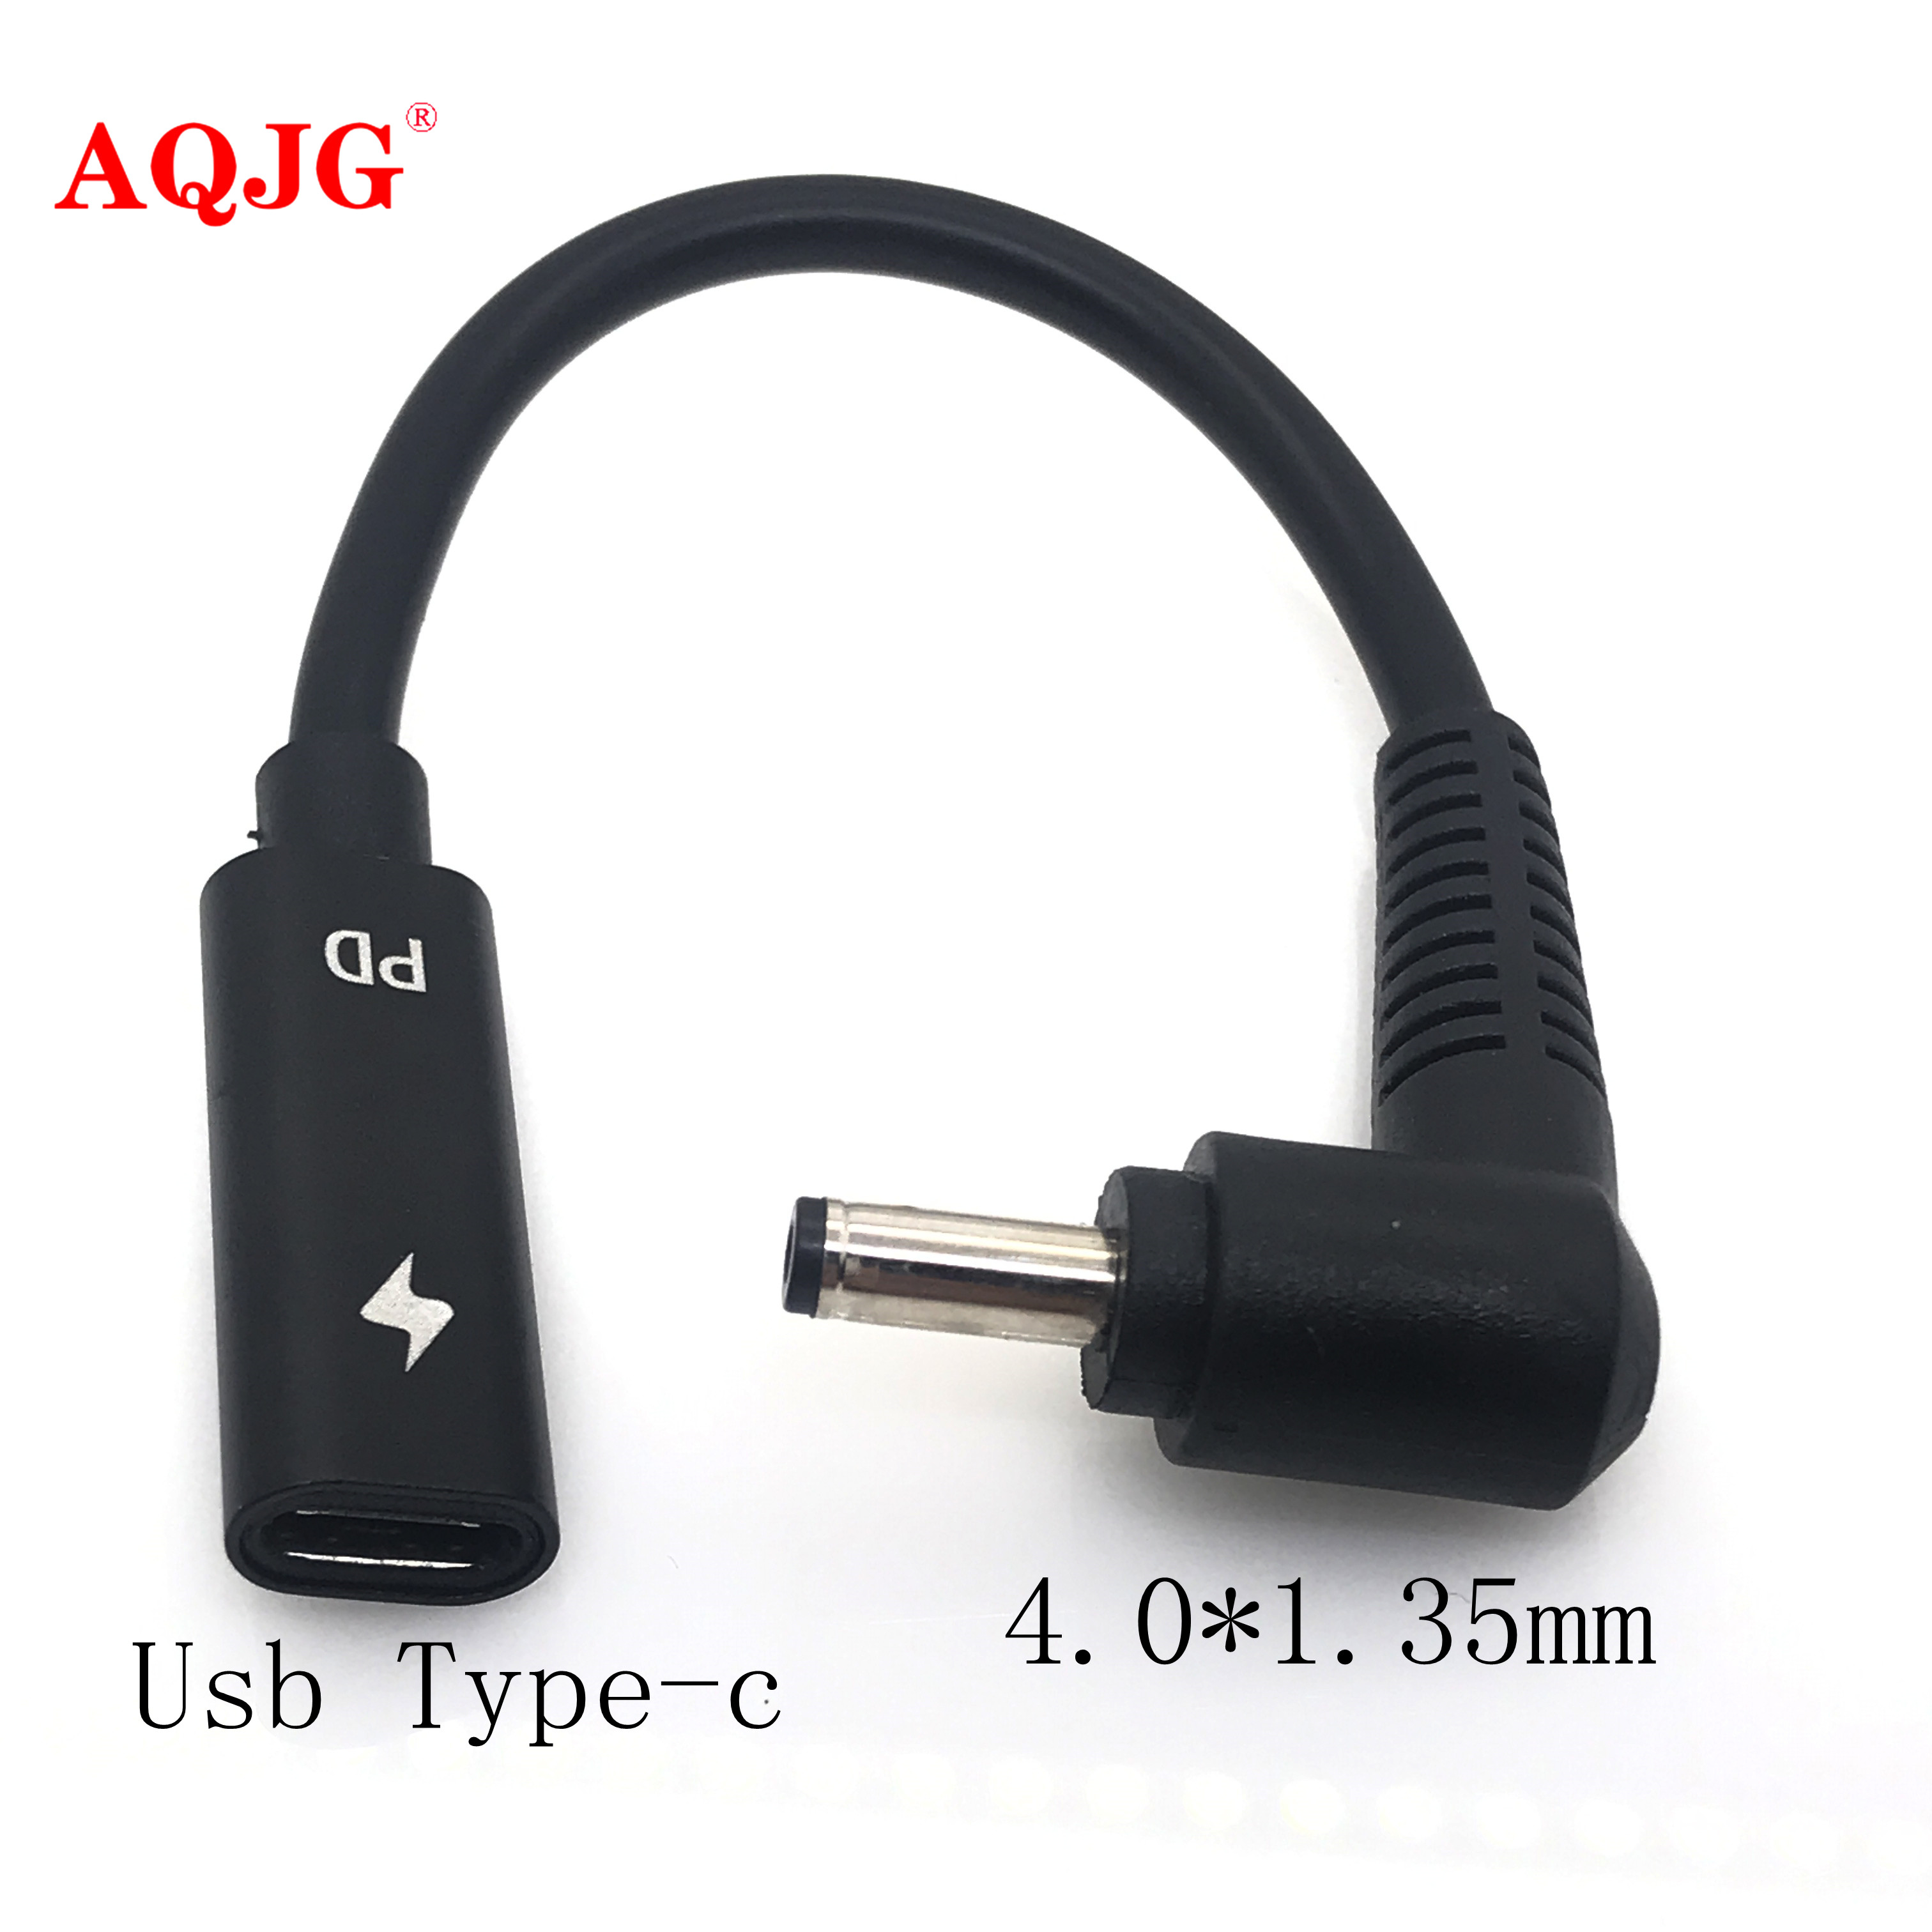 DC Power Adapter 4.0x1.35mm Male Plug To USB Type C Female Jack Connector With Cabe Cord For Asus Zenbook UX21A UX31A UX32A